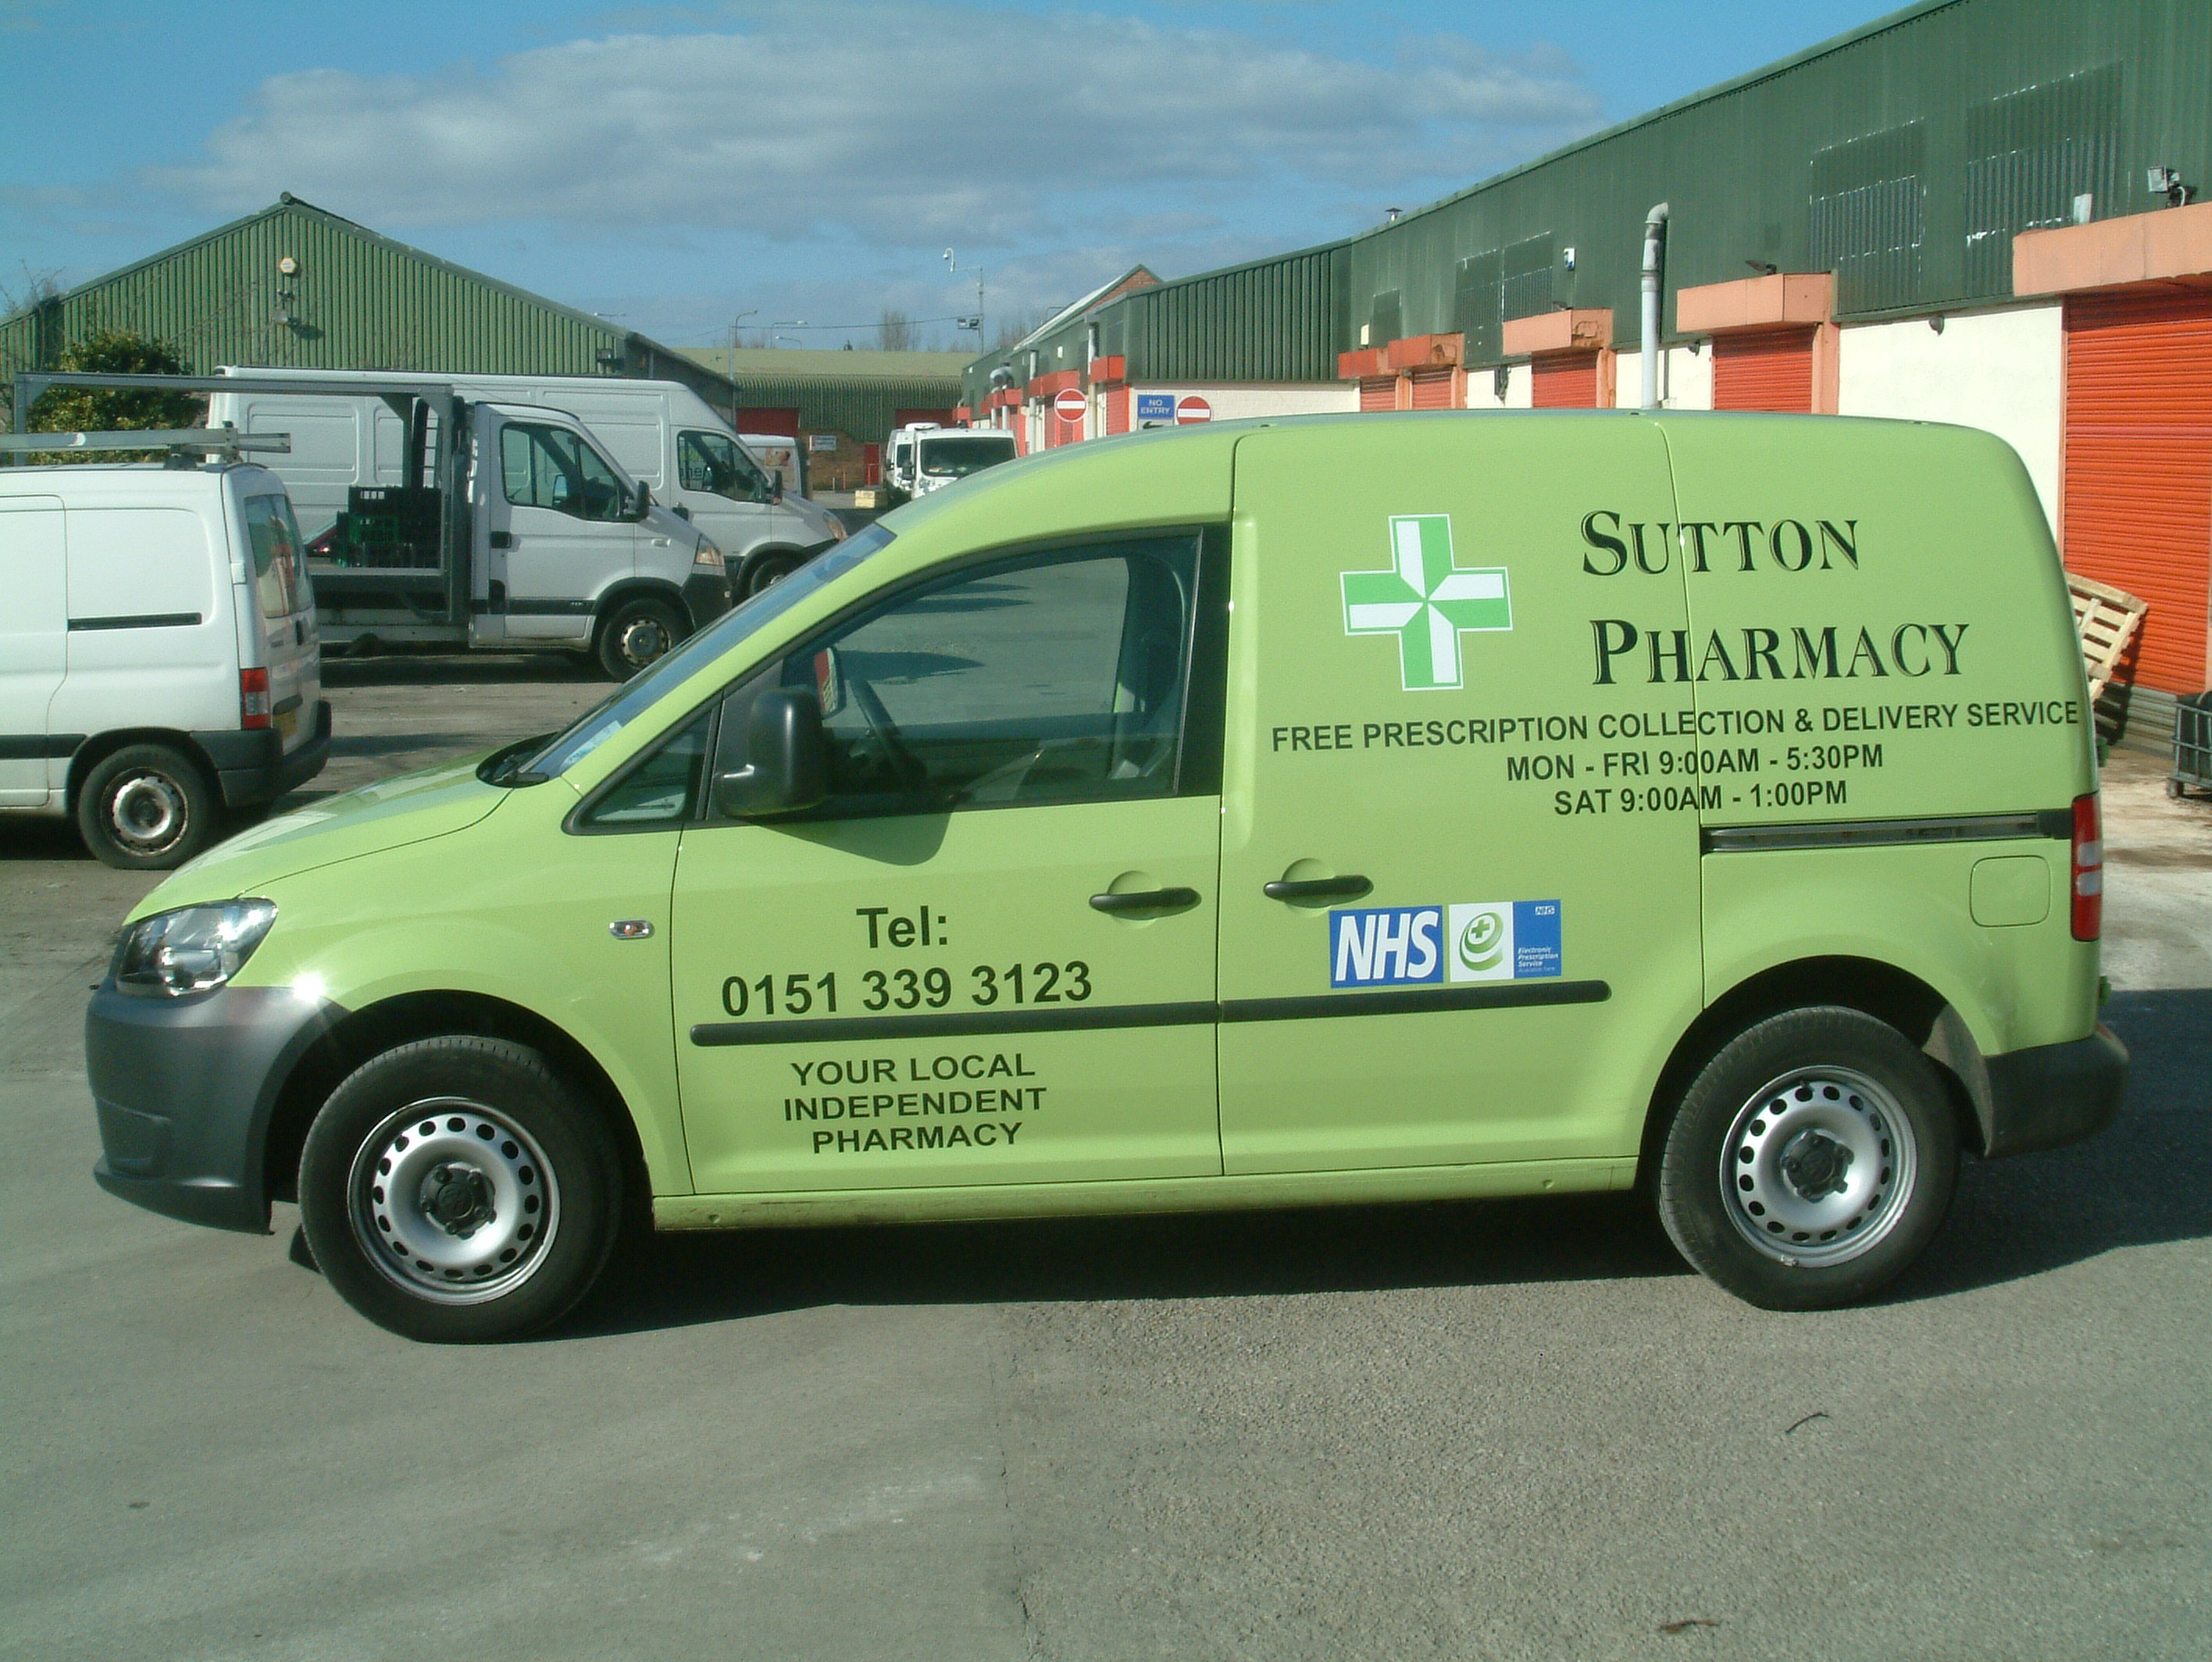 Sutton Pharmacy Van